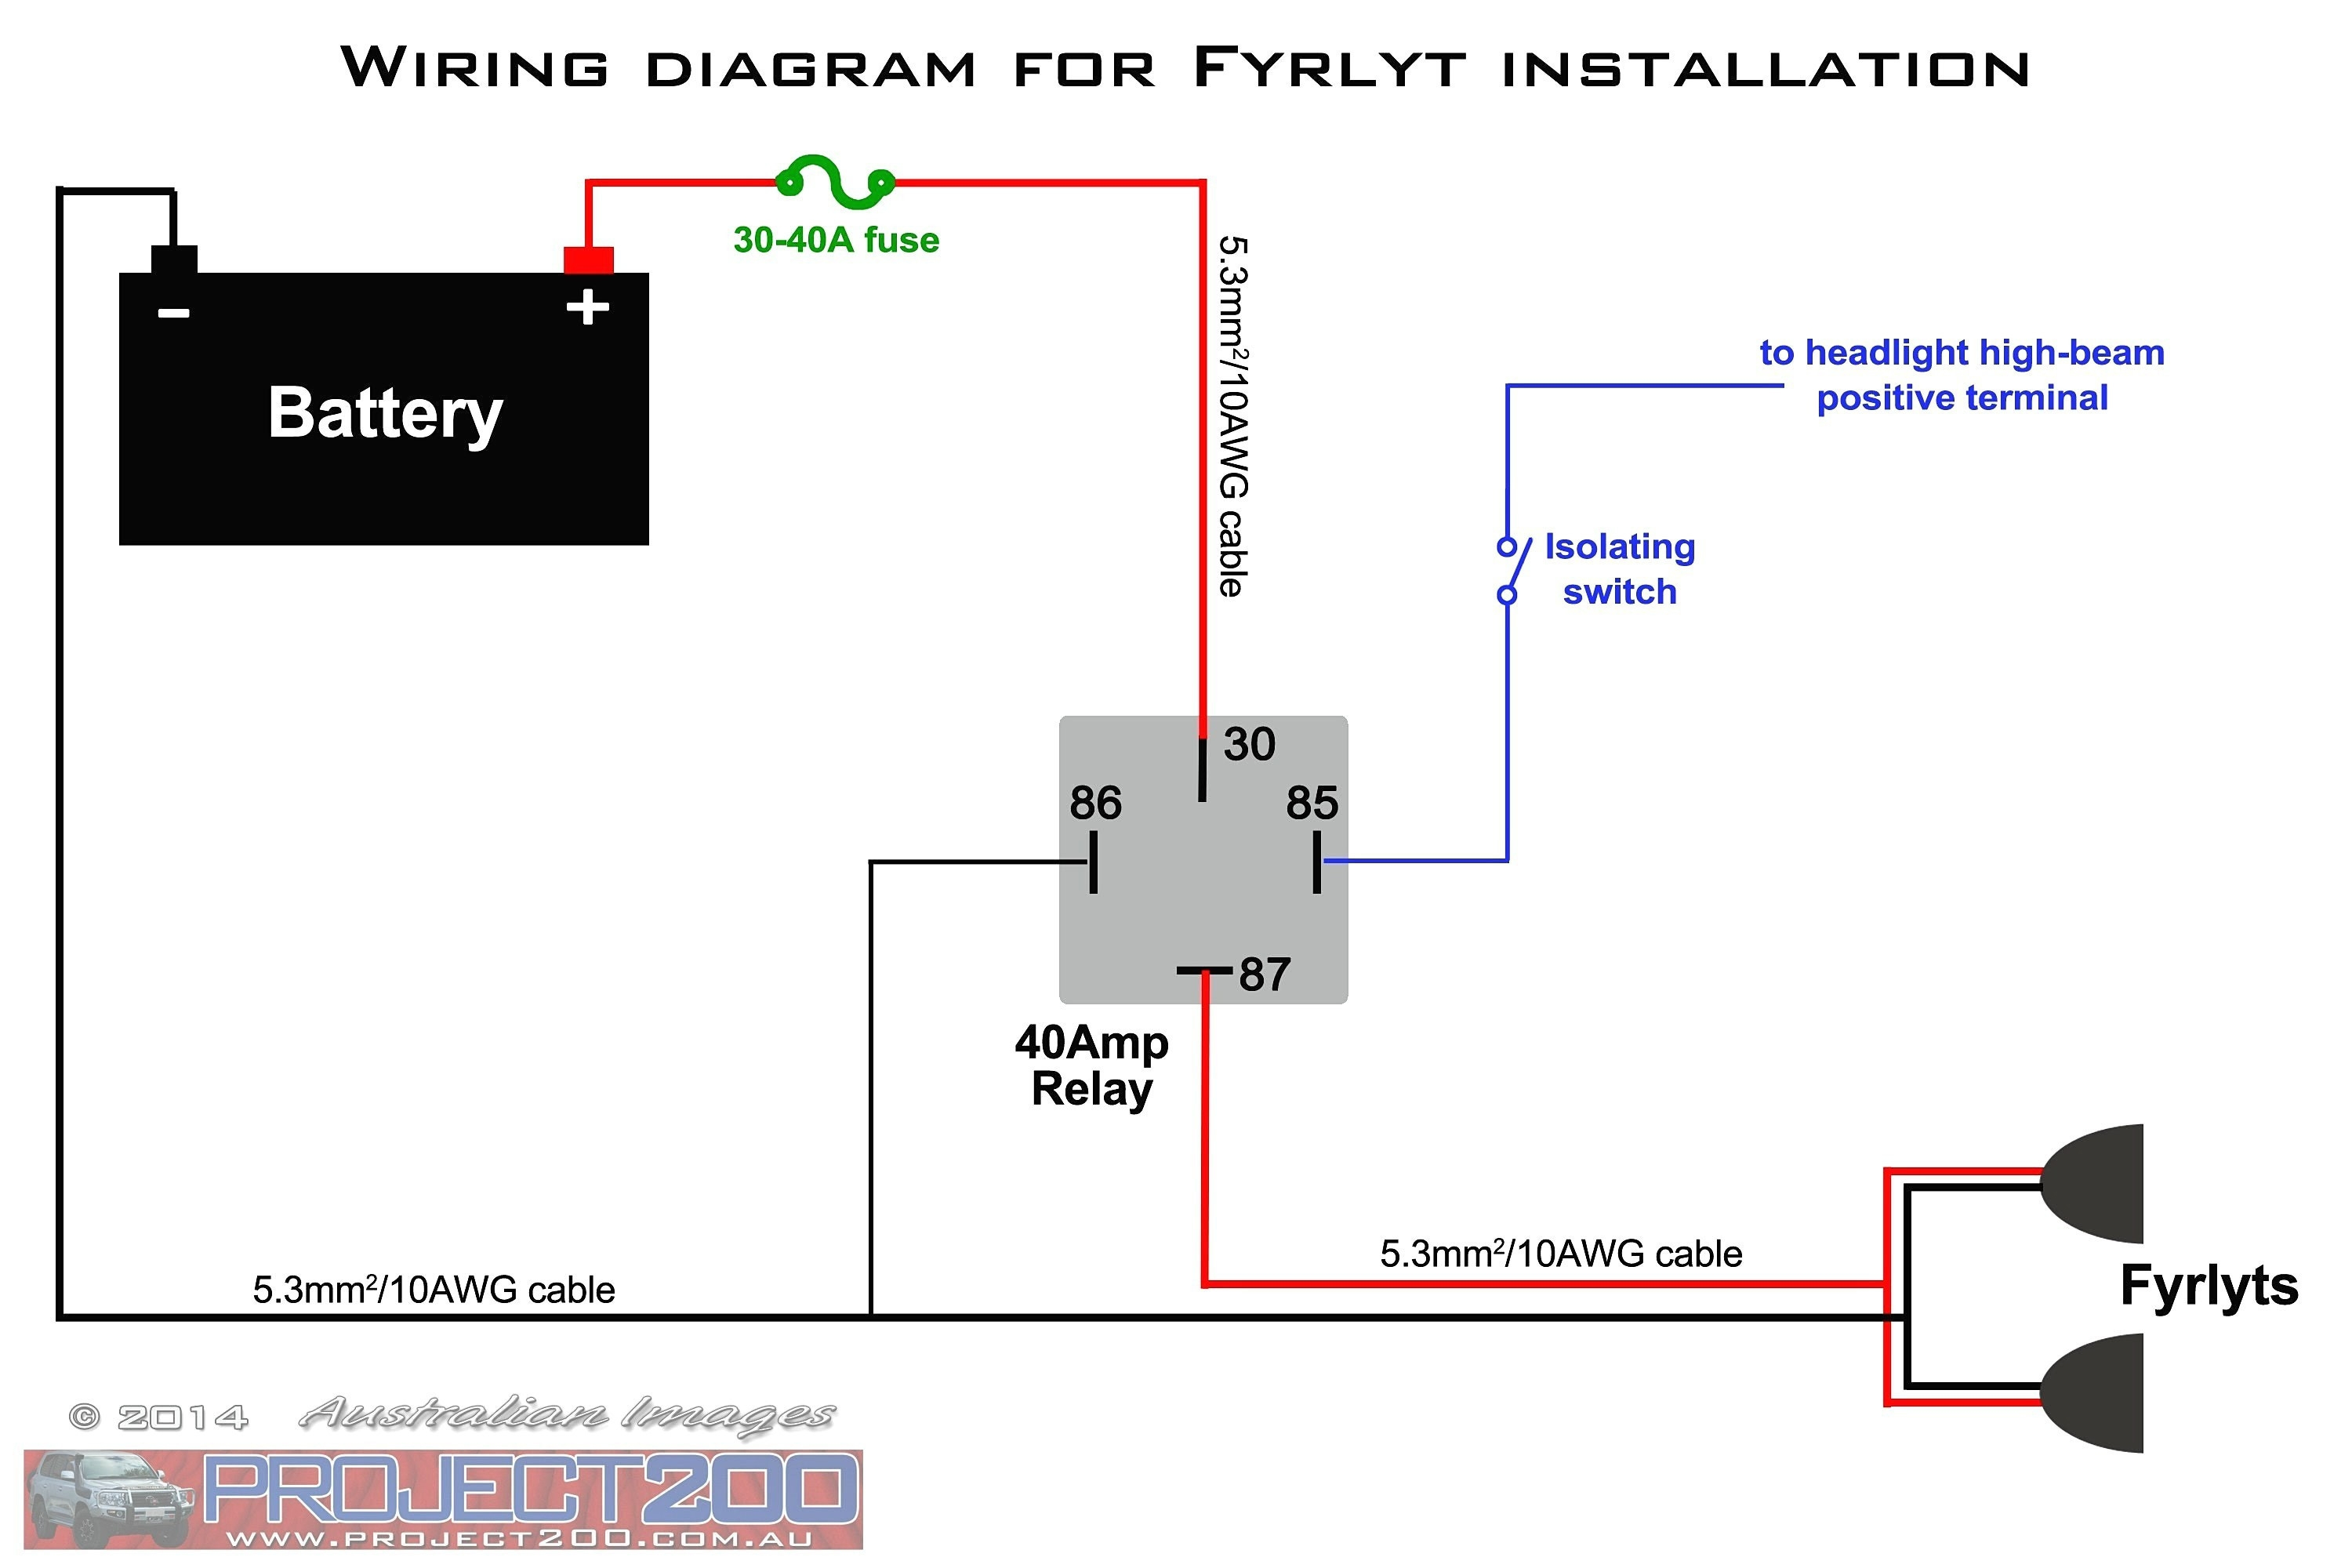 pnoz x4 wiring diagram Collection-Wiring Diagram with Relay & Bosch Relay Wiring Diagram for Horn Pnoz X4 Wiring Diagram 3-c